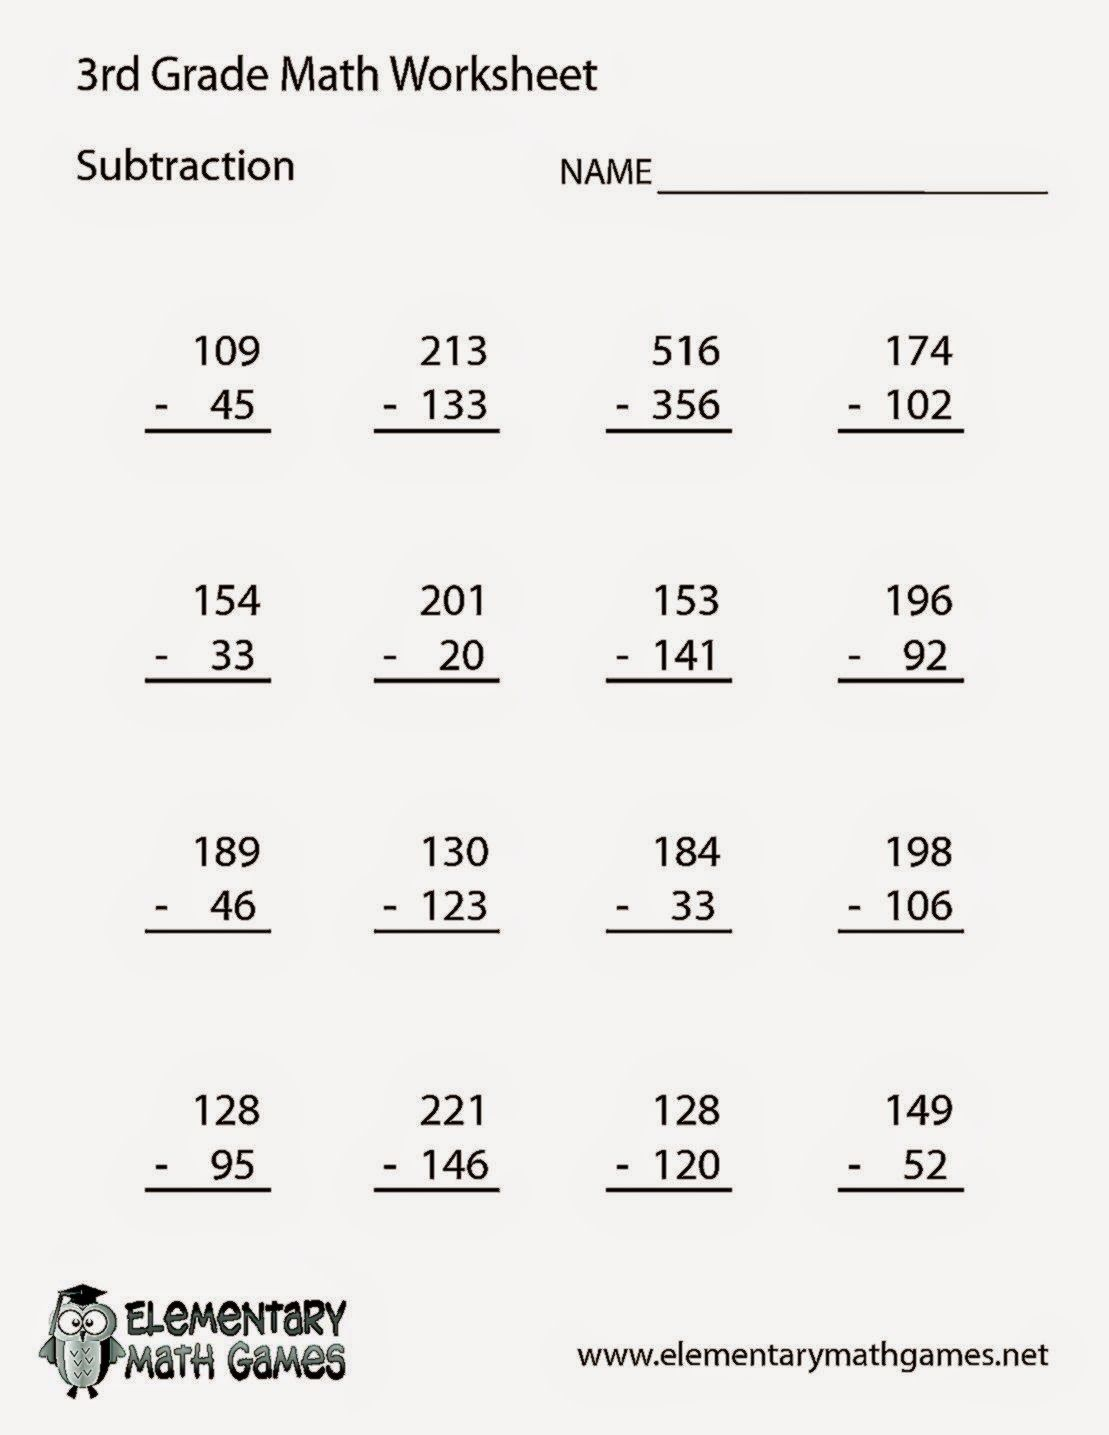 3rd Grade Math Worksheets With Images